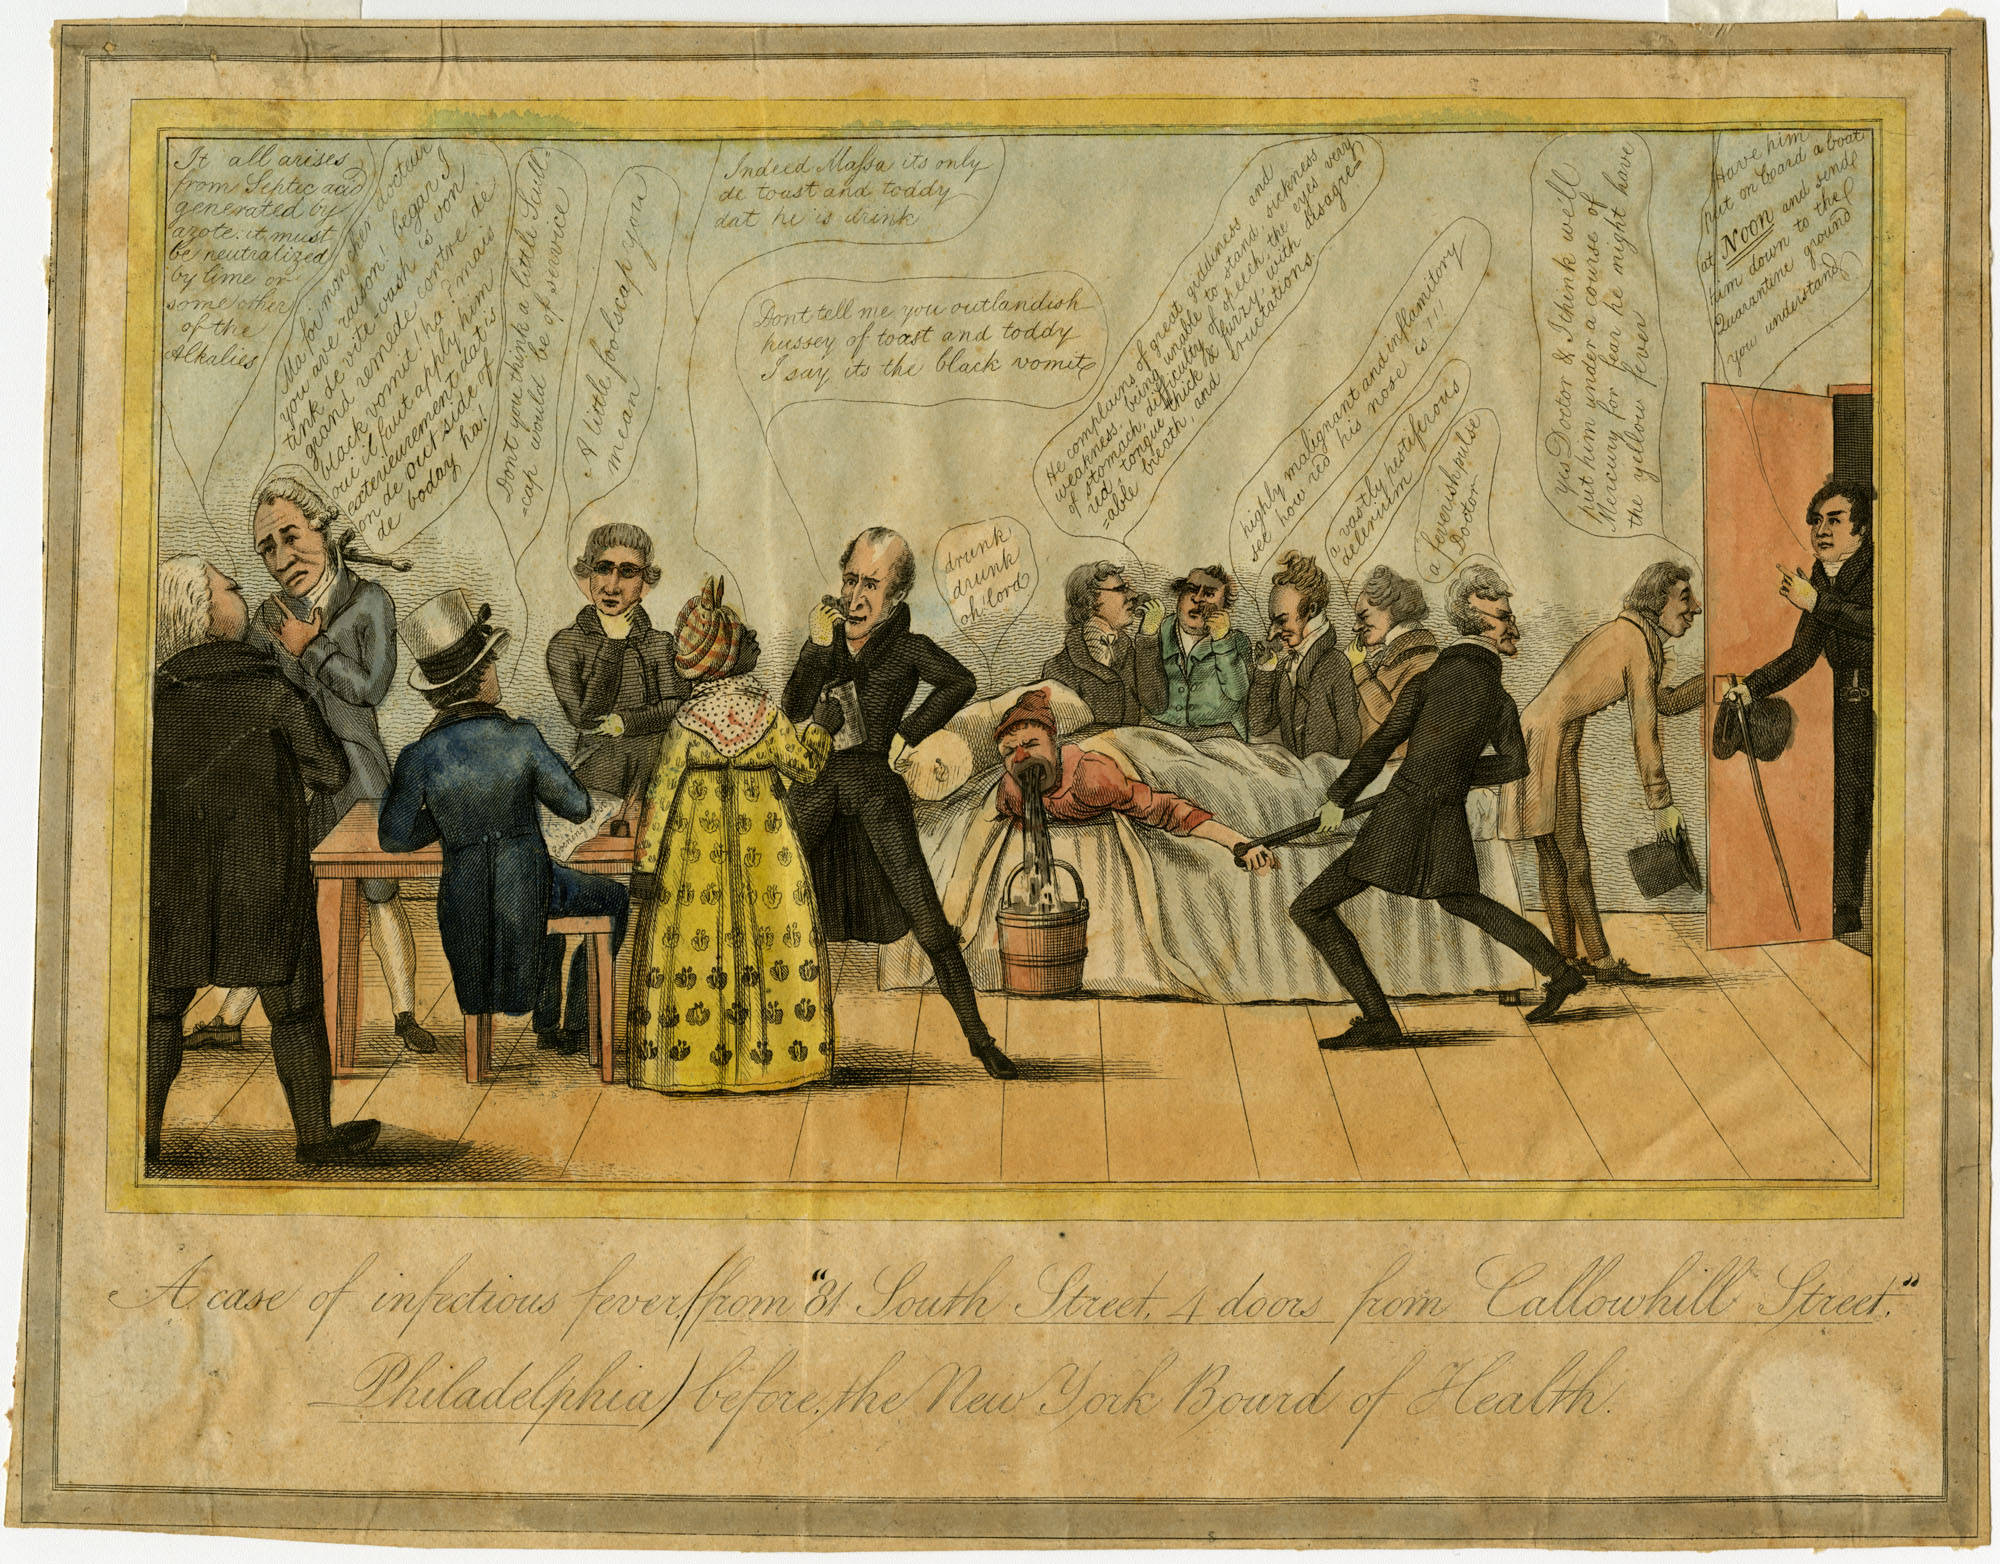 Digital image via Library Company of Philadelphia.